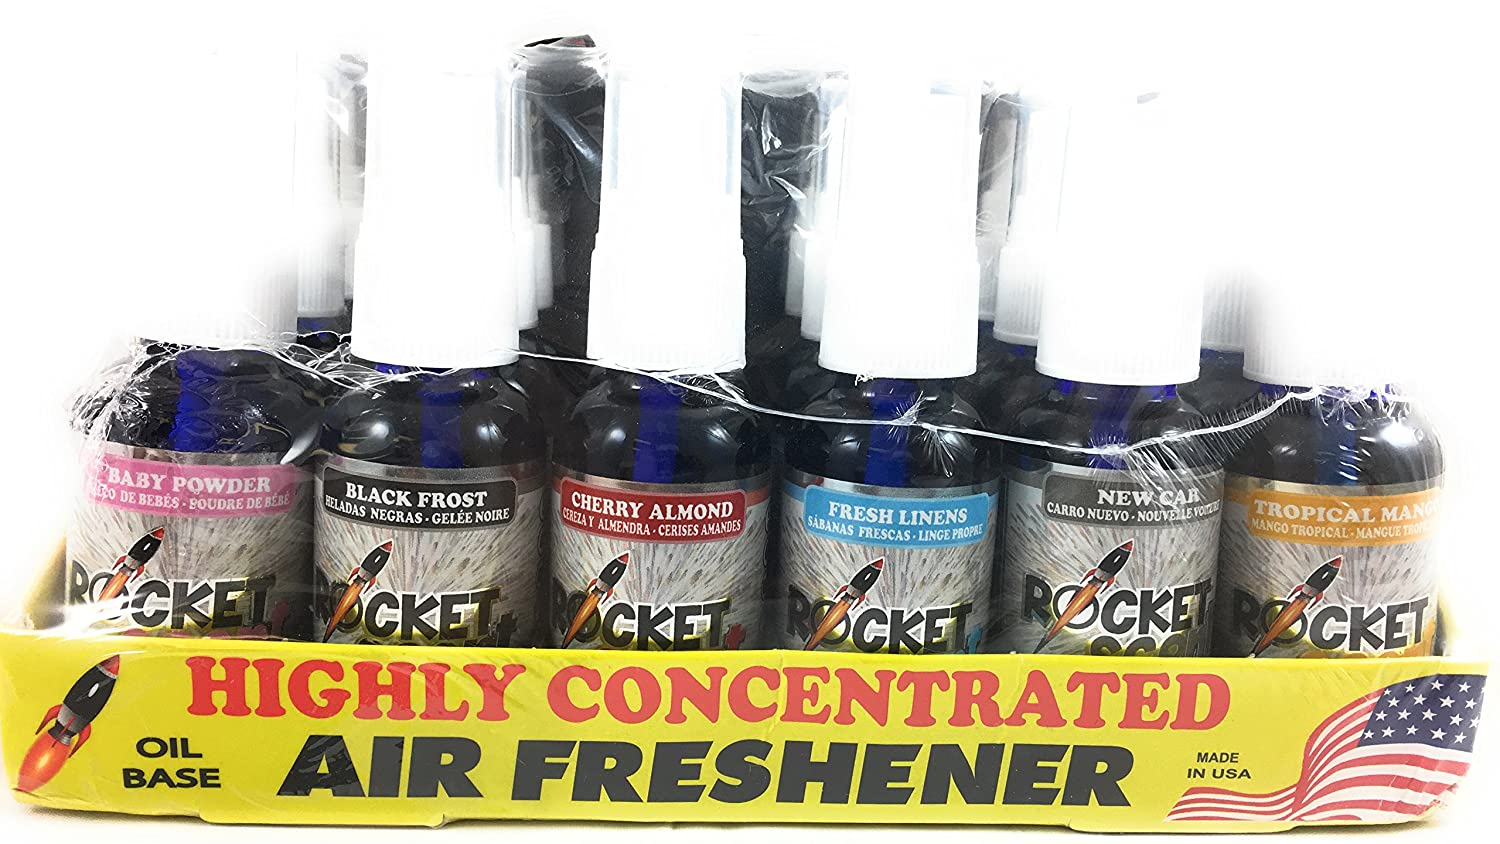 Rocket Scent Air Freshener Oil Base Assorted 24 Pack Baby Powder Black Frost Cherry Almond Fresh Linens New Car and Tropical Mango Use in Vehicles Bathrooms ...